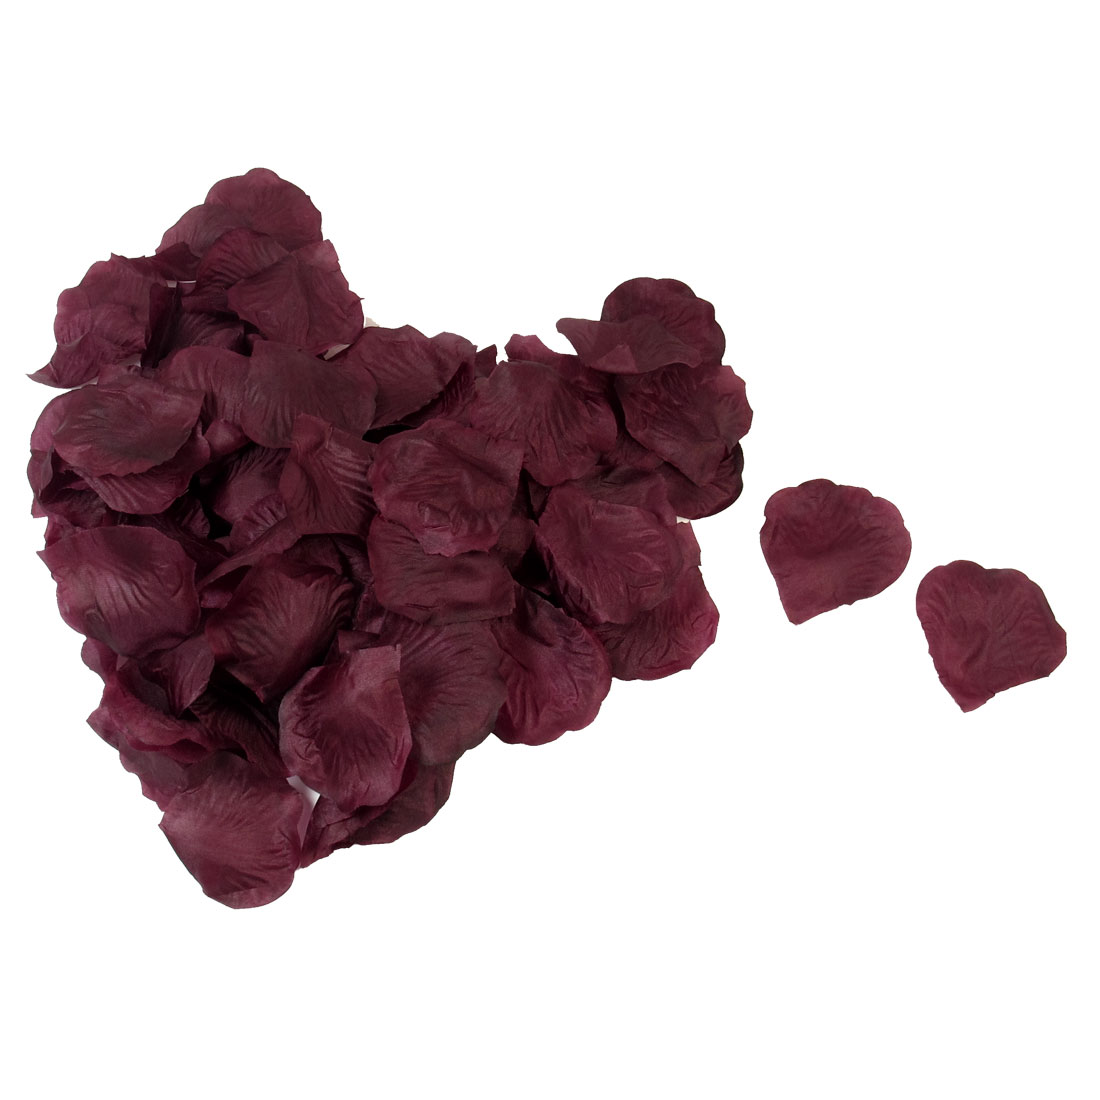 100 Pcs Wedding Bedroom House Detail Manmade Fabric Rose Floral Petals Claret